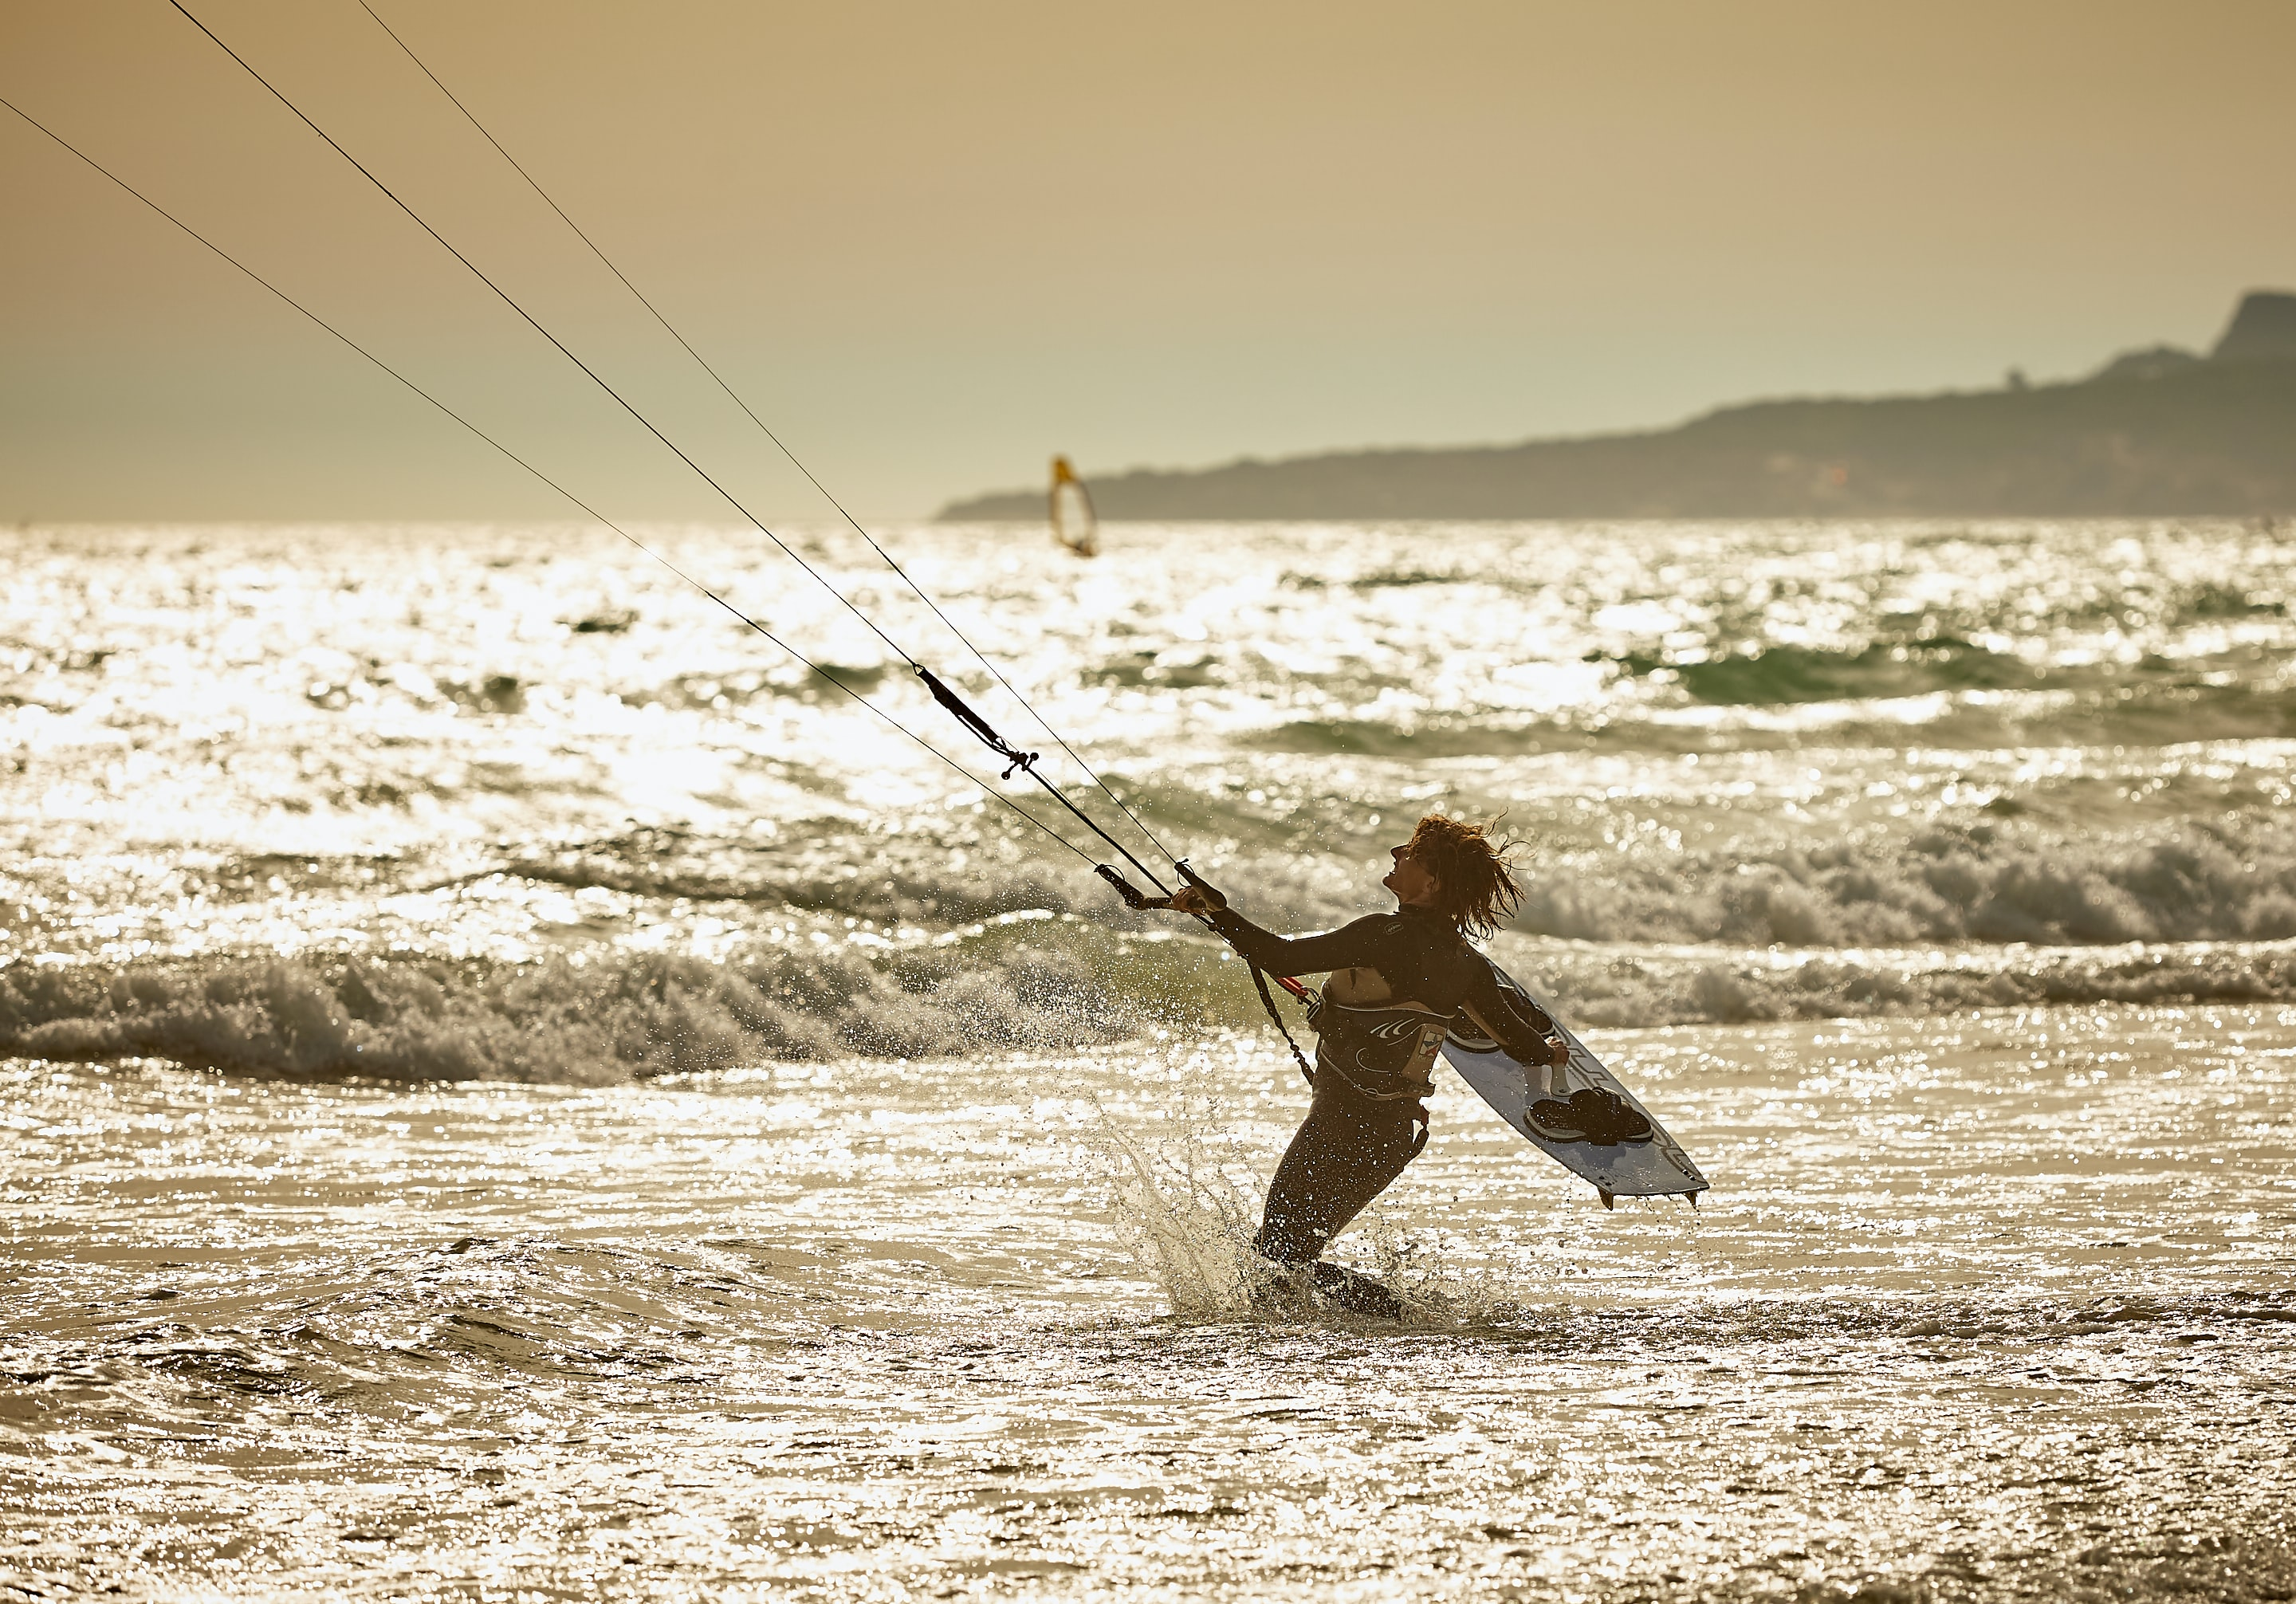 person doing wind surfing on body of water